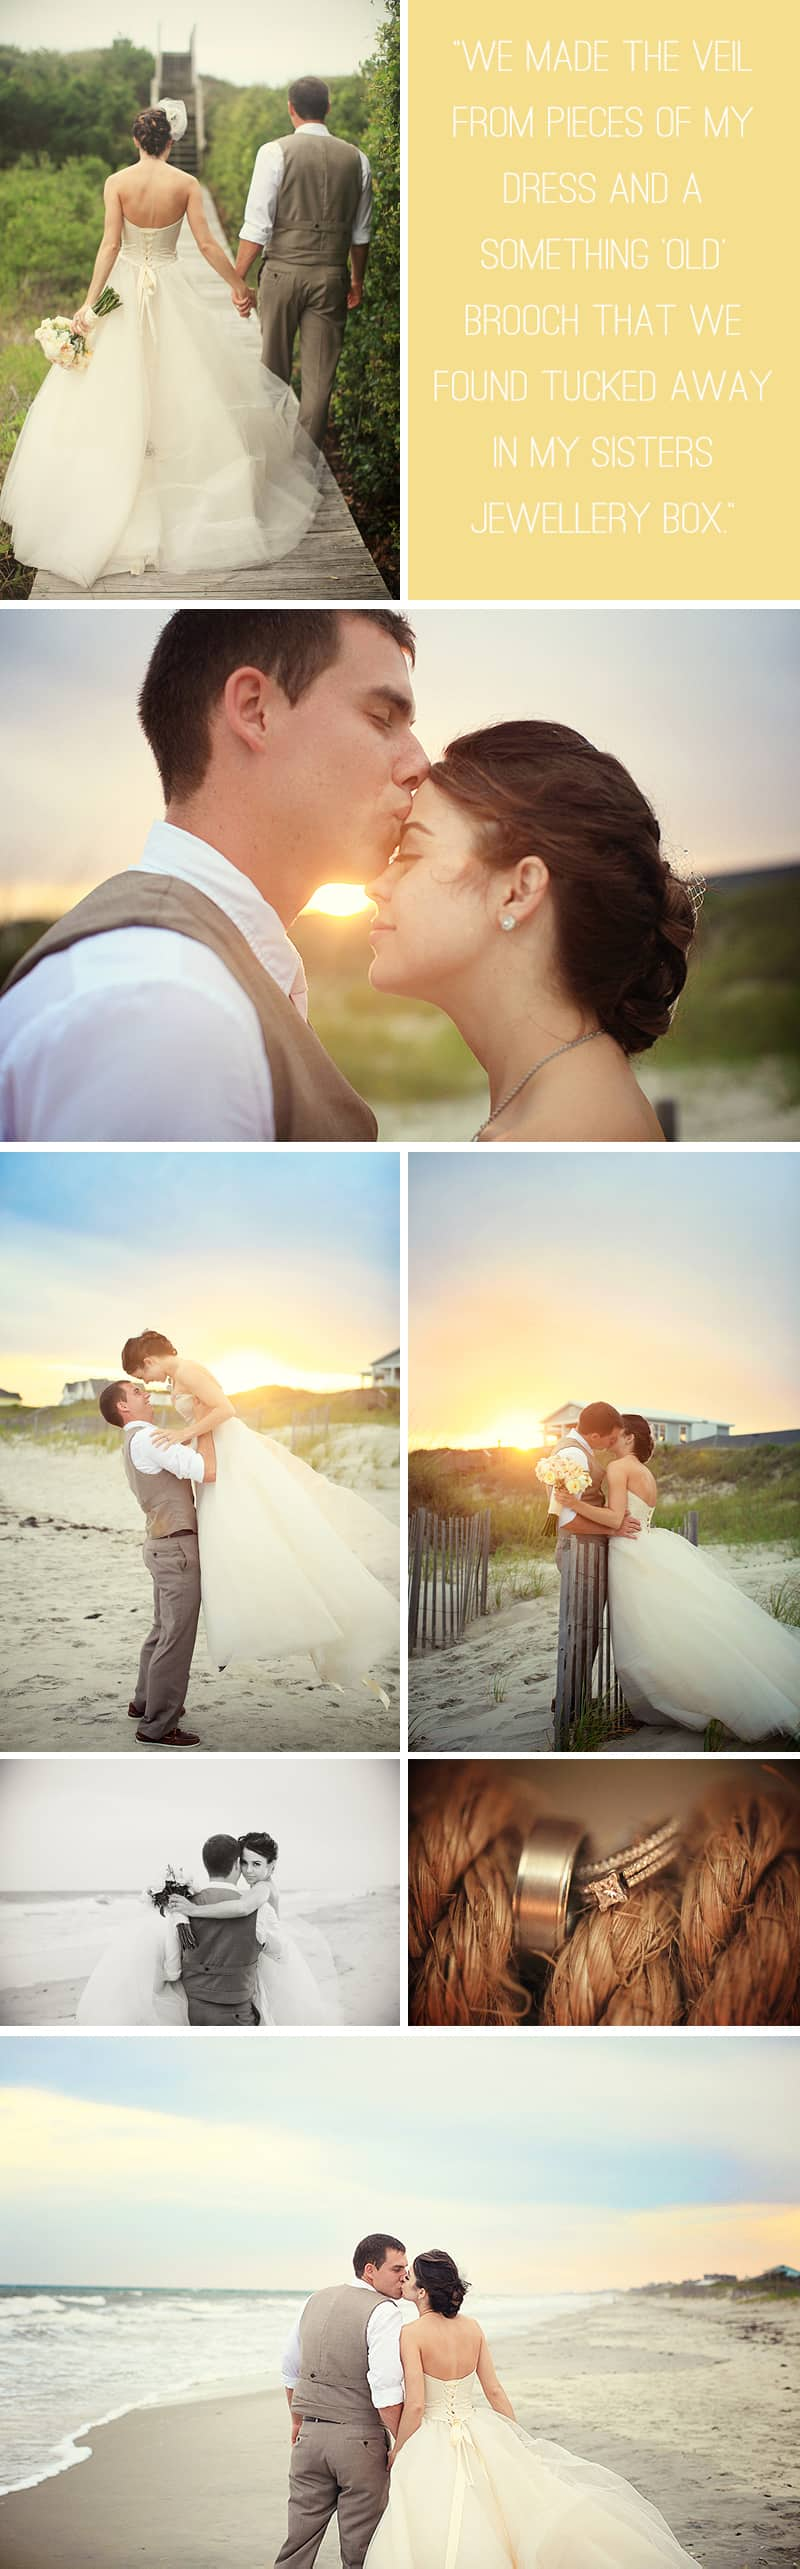 An Intimate Beach Wedding 3